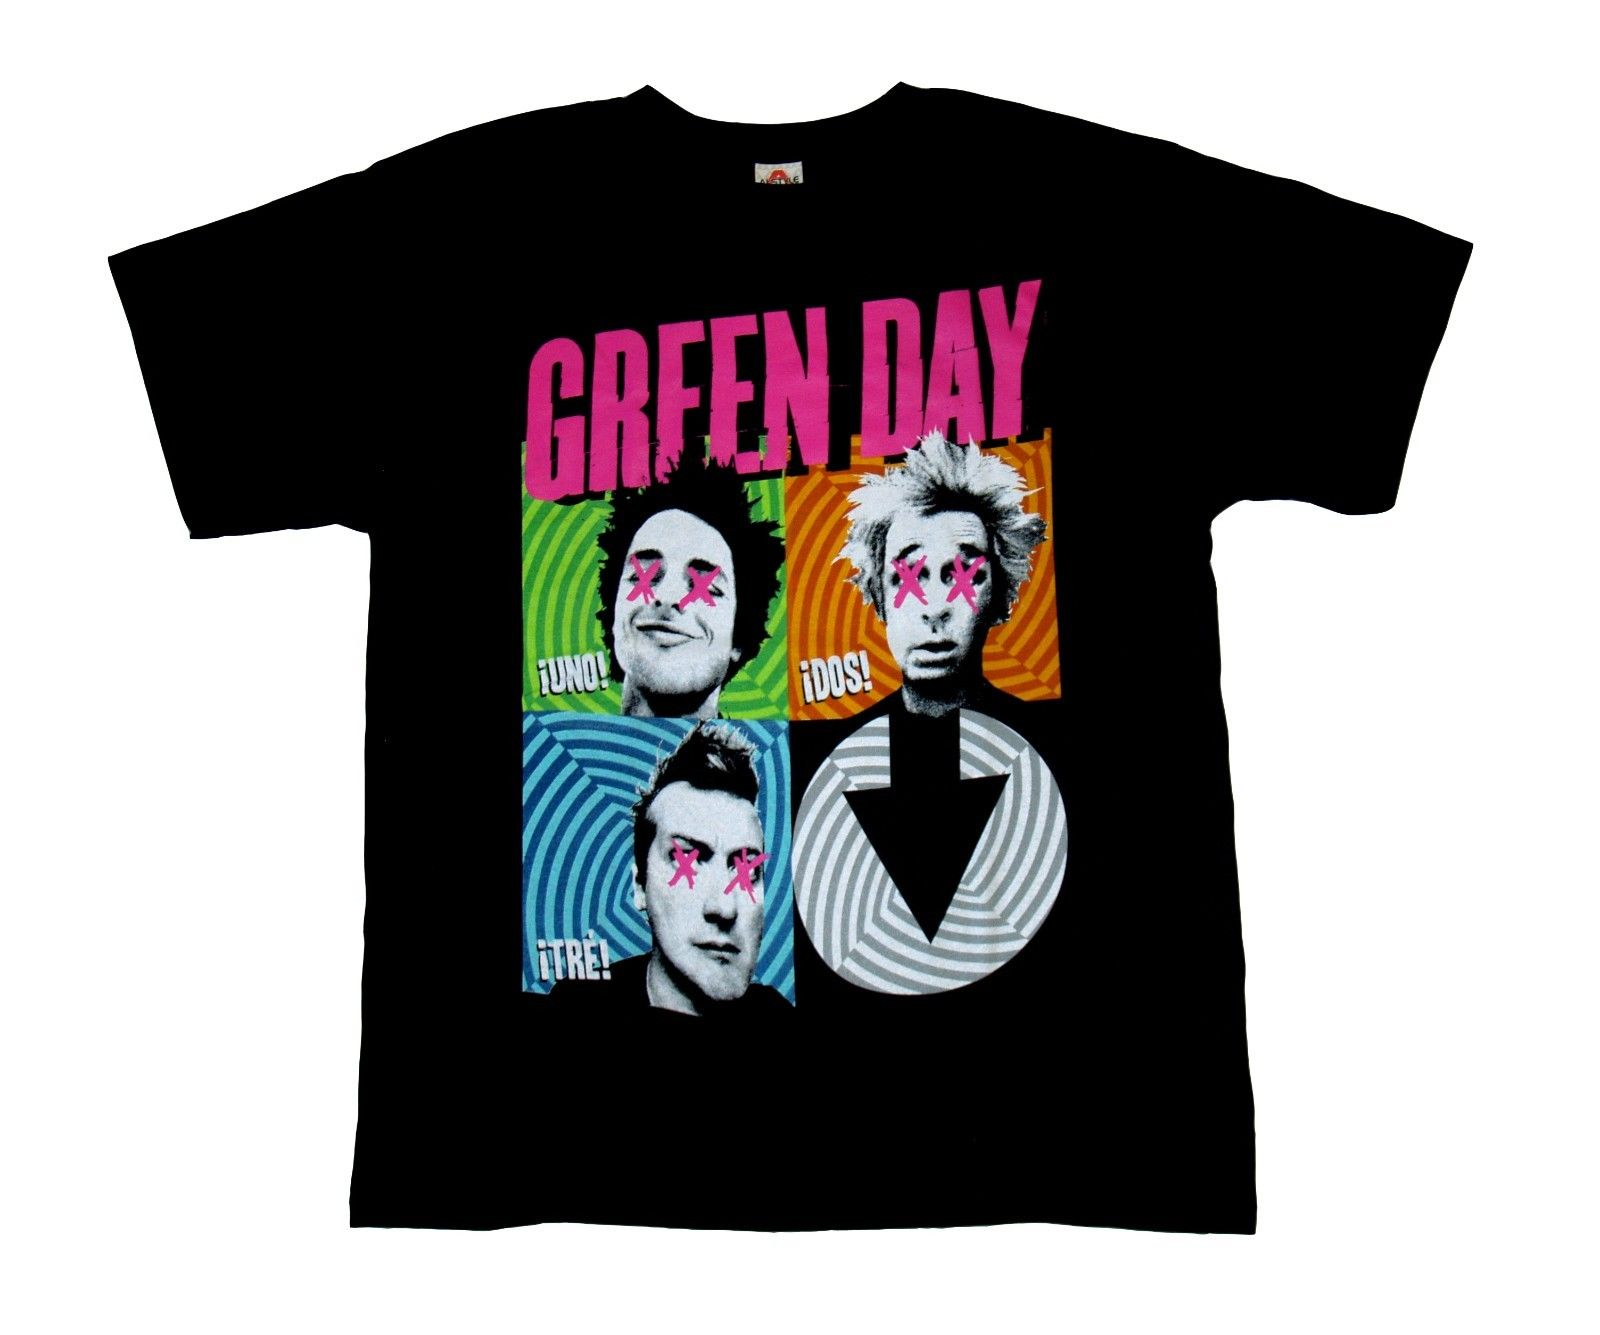 GREEN DAY - Faces - t shirt S,M,L,XL,2XL Brand New Official Merchandise